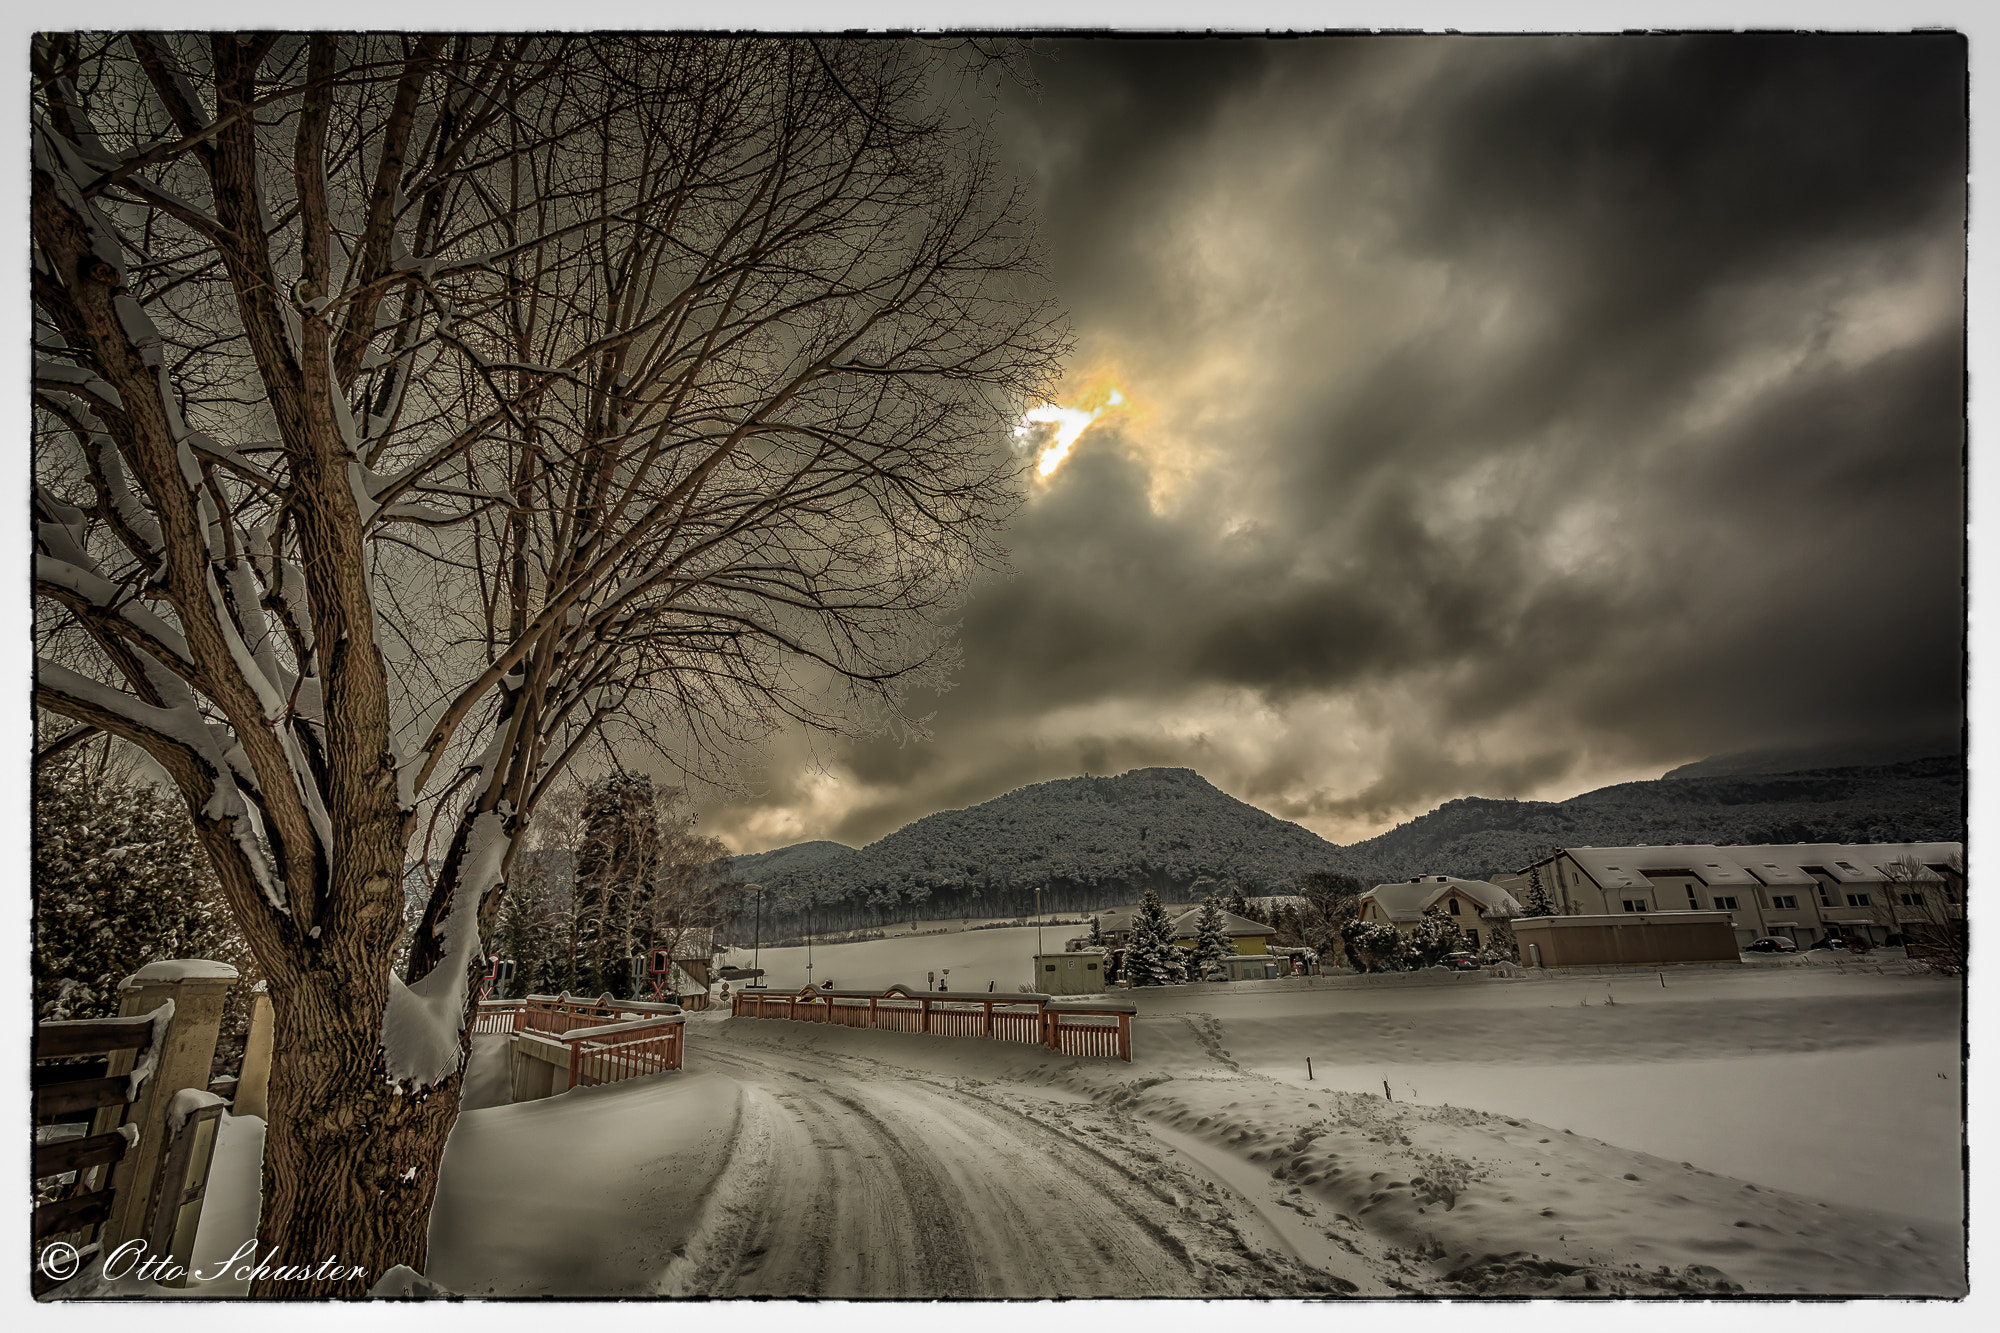 Photograph Winterstorm by Otto Schuster on 500px